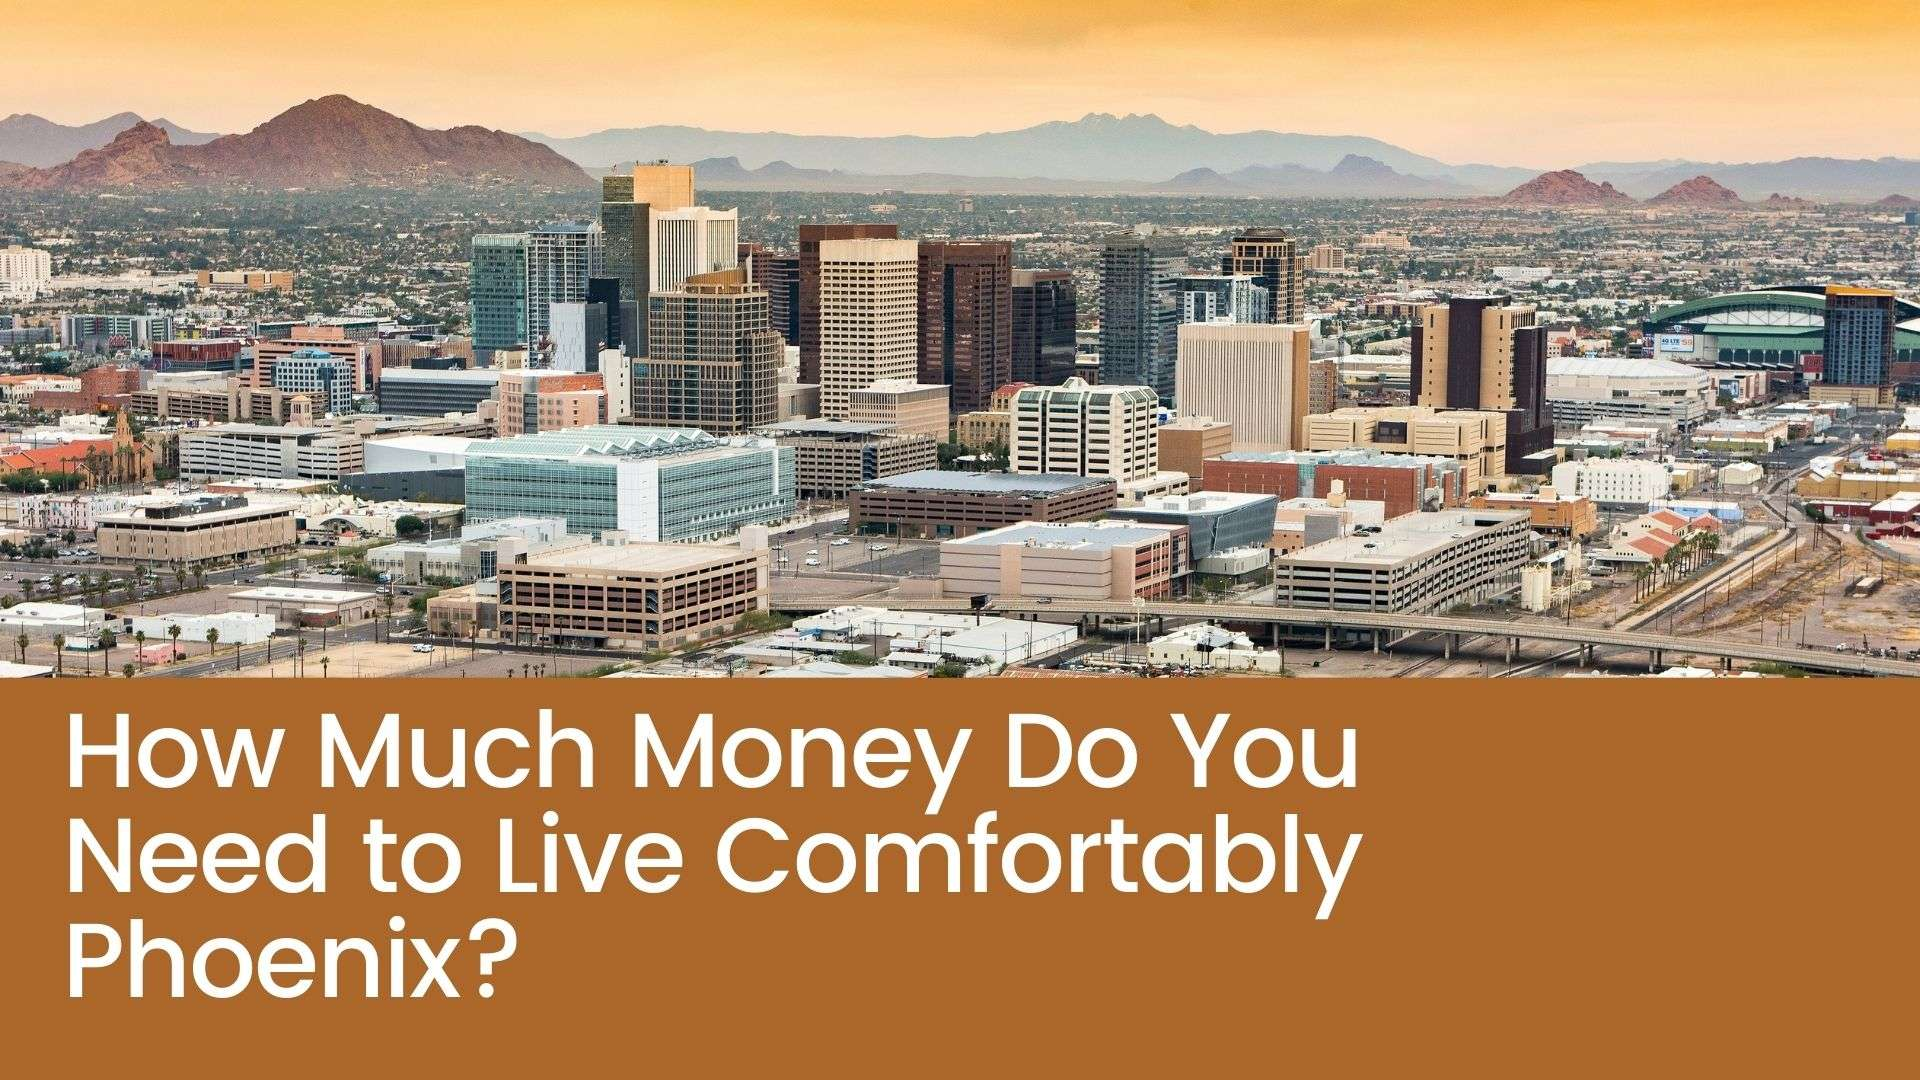 How Much Money Do You Need to Live Comfortably Phoenix?